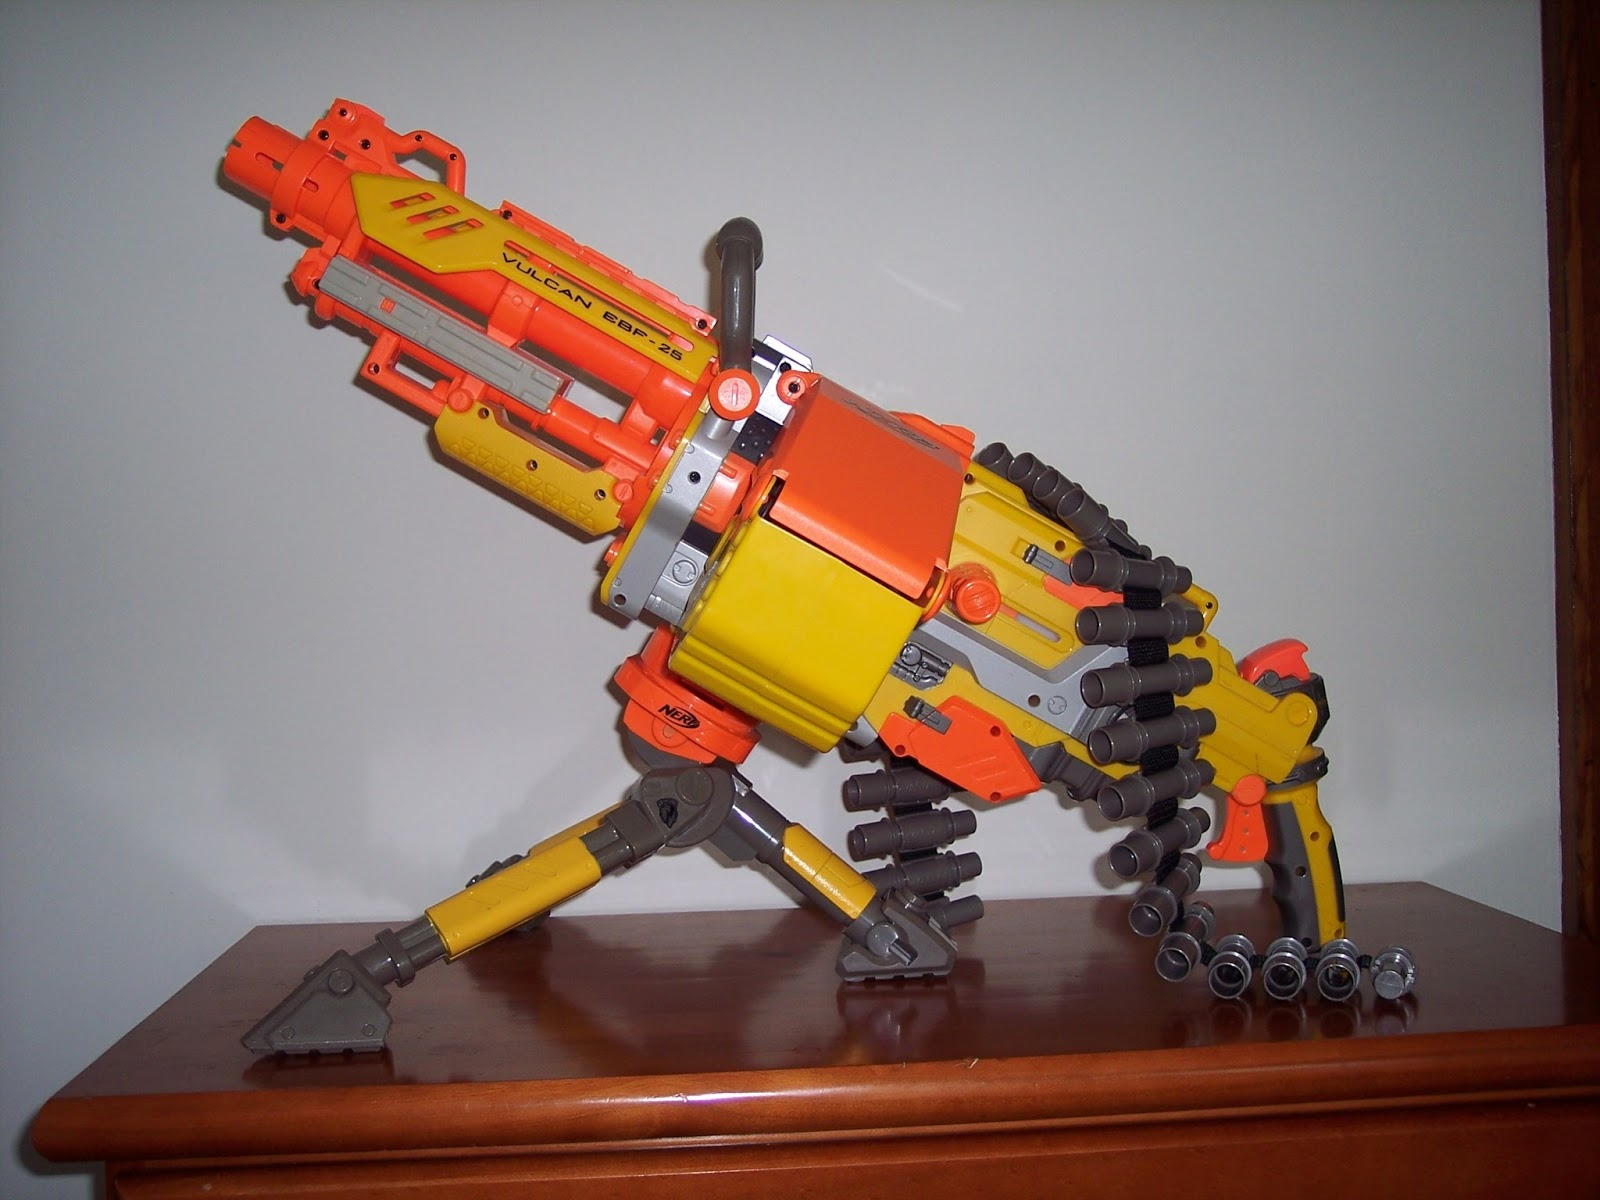 Nerf guns Add to your summer fun various types Most include bullets All are gently used All offers condsidered